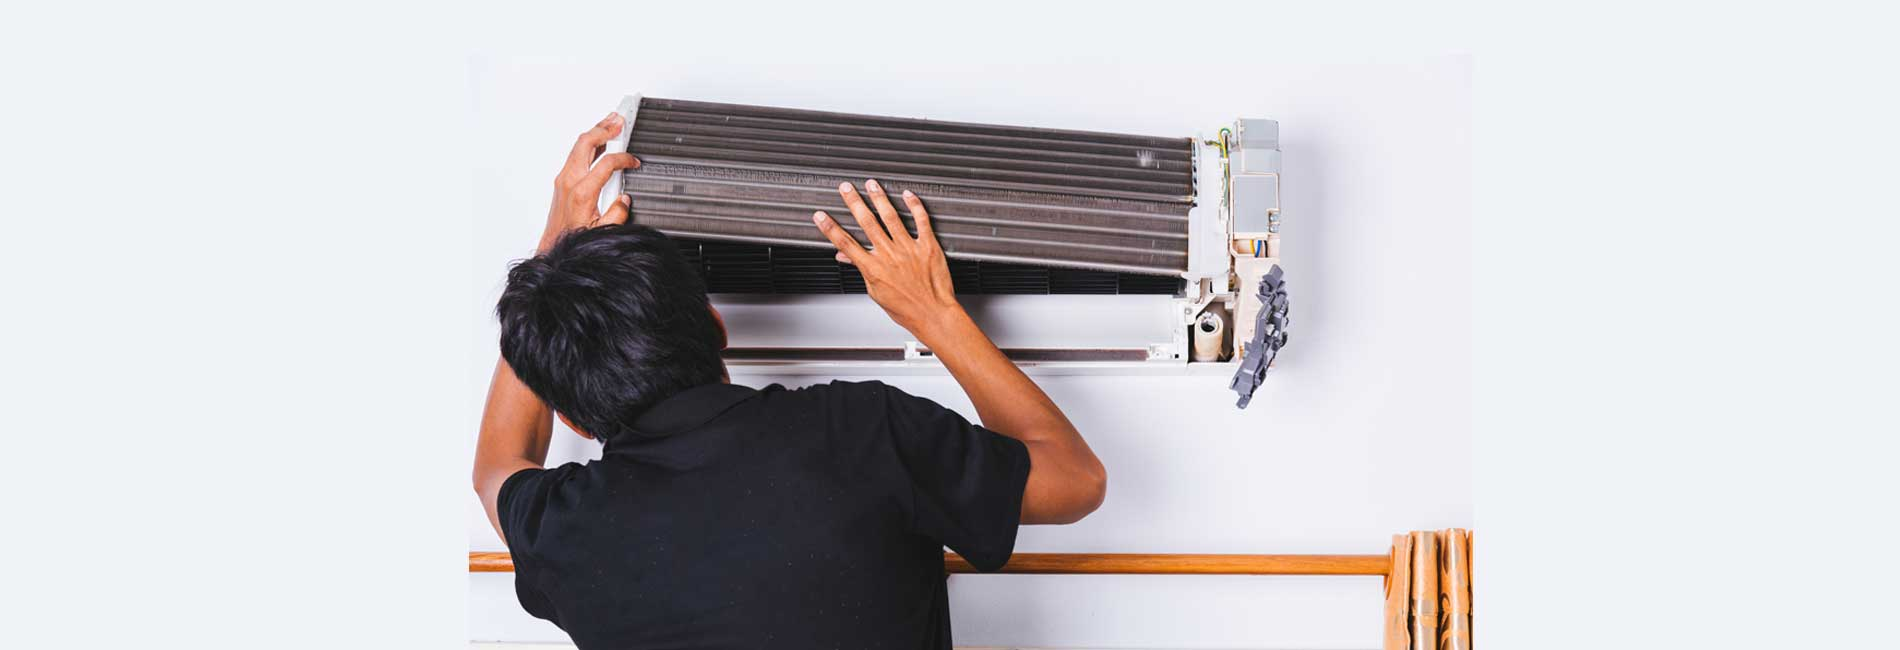 AC Uninstallation Service in Chennai